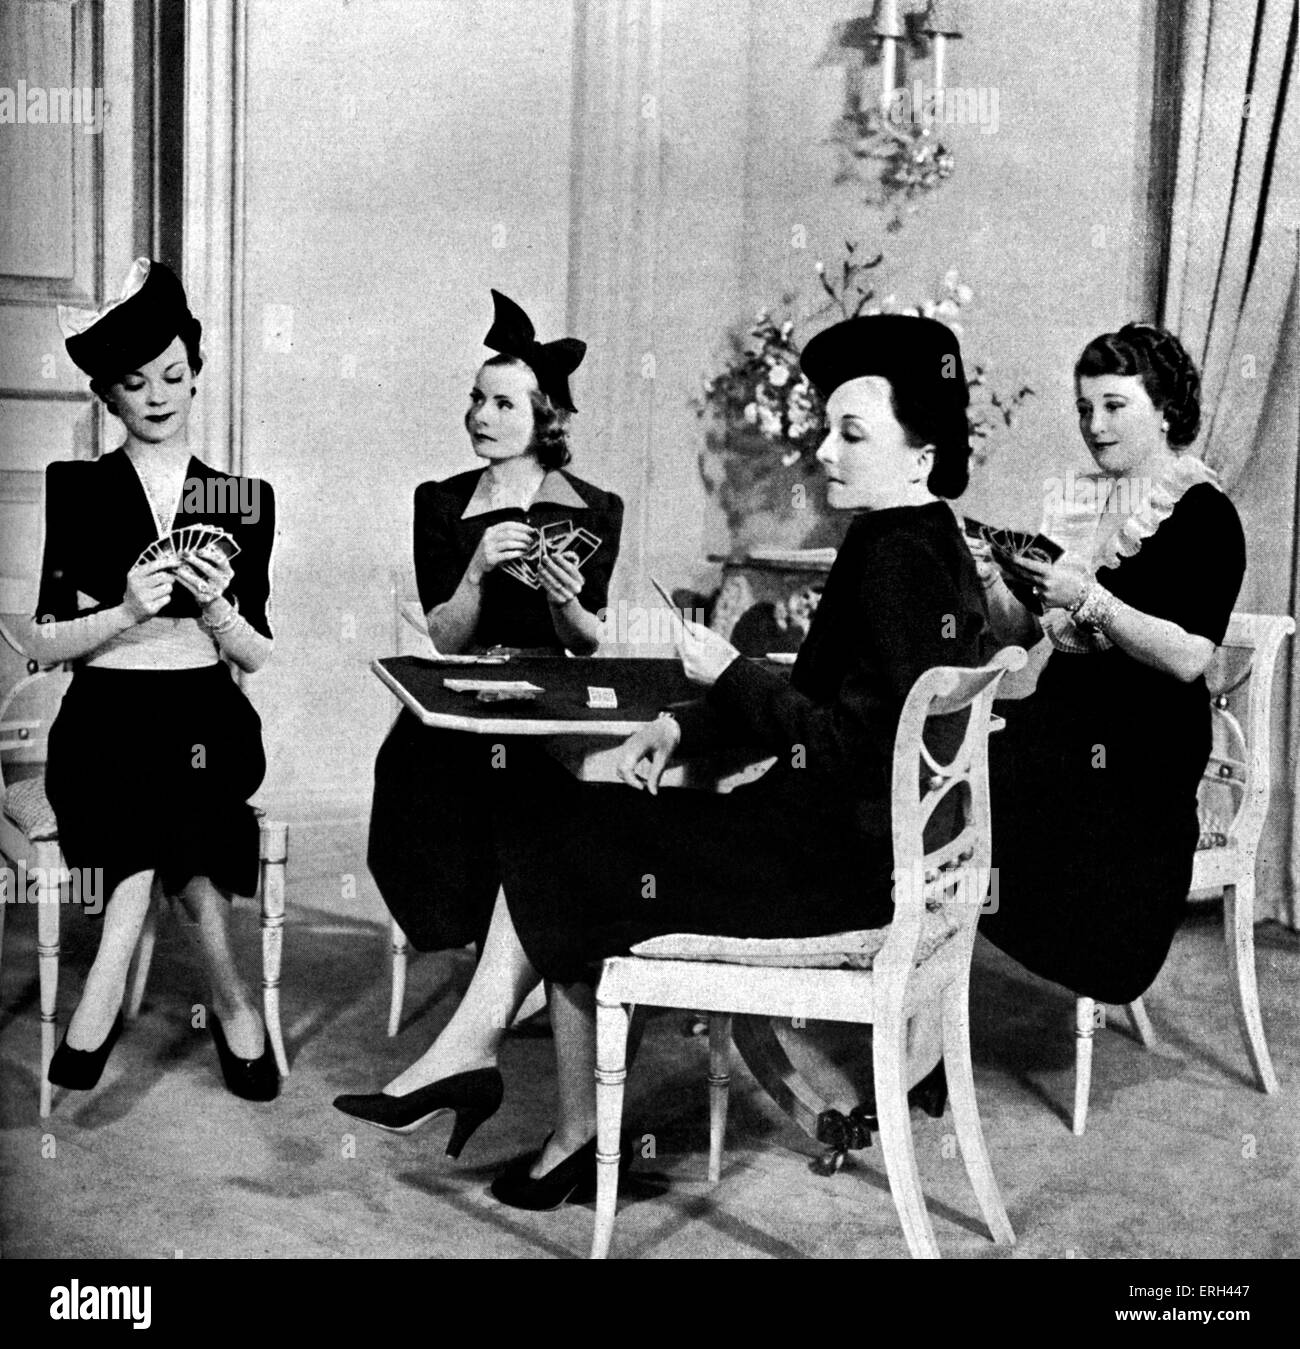 'The Women' by Clare Boothe, with Mary Alice Collins, Rita Davies, Molly Raynor and Emily Ross playing cards. - Stock Image